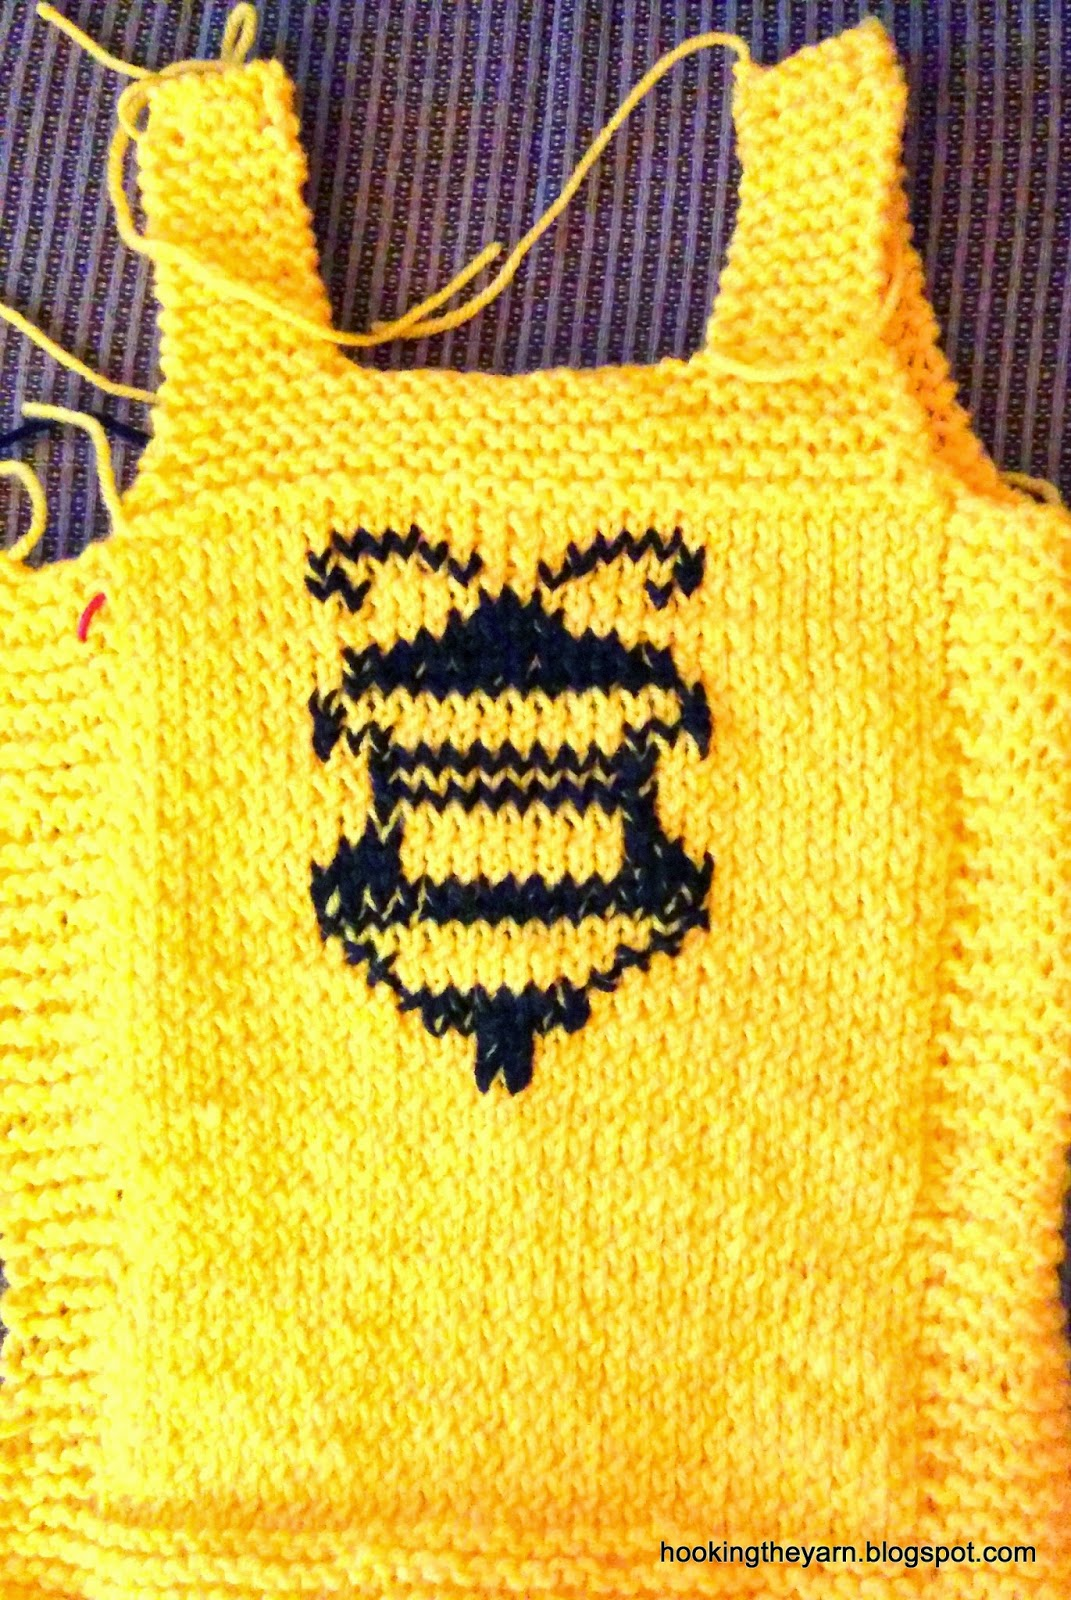 Hookingtheyarn: Knitted bumble bee baby set